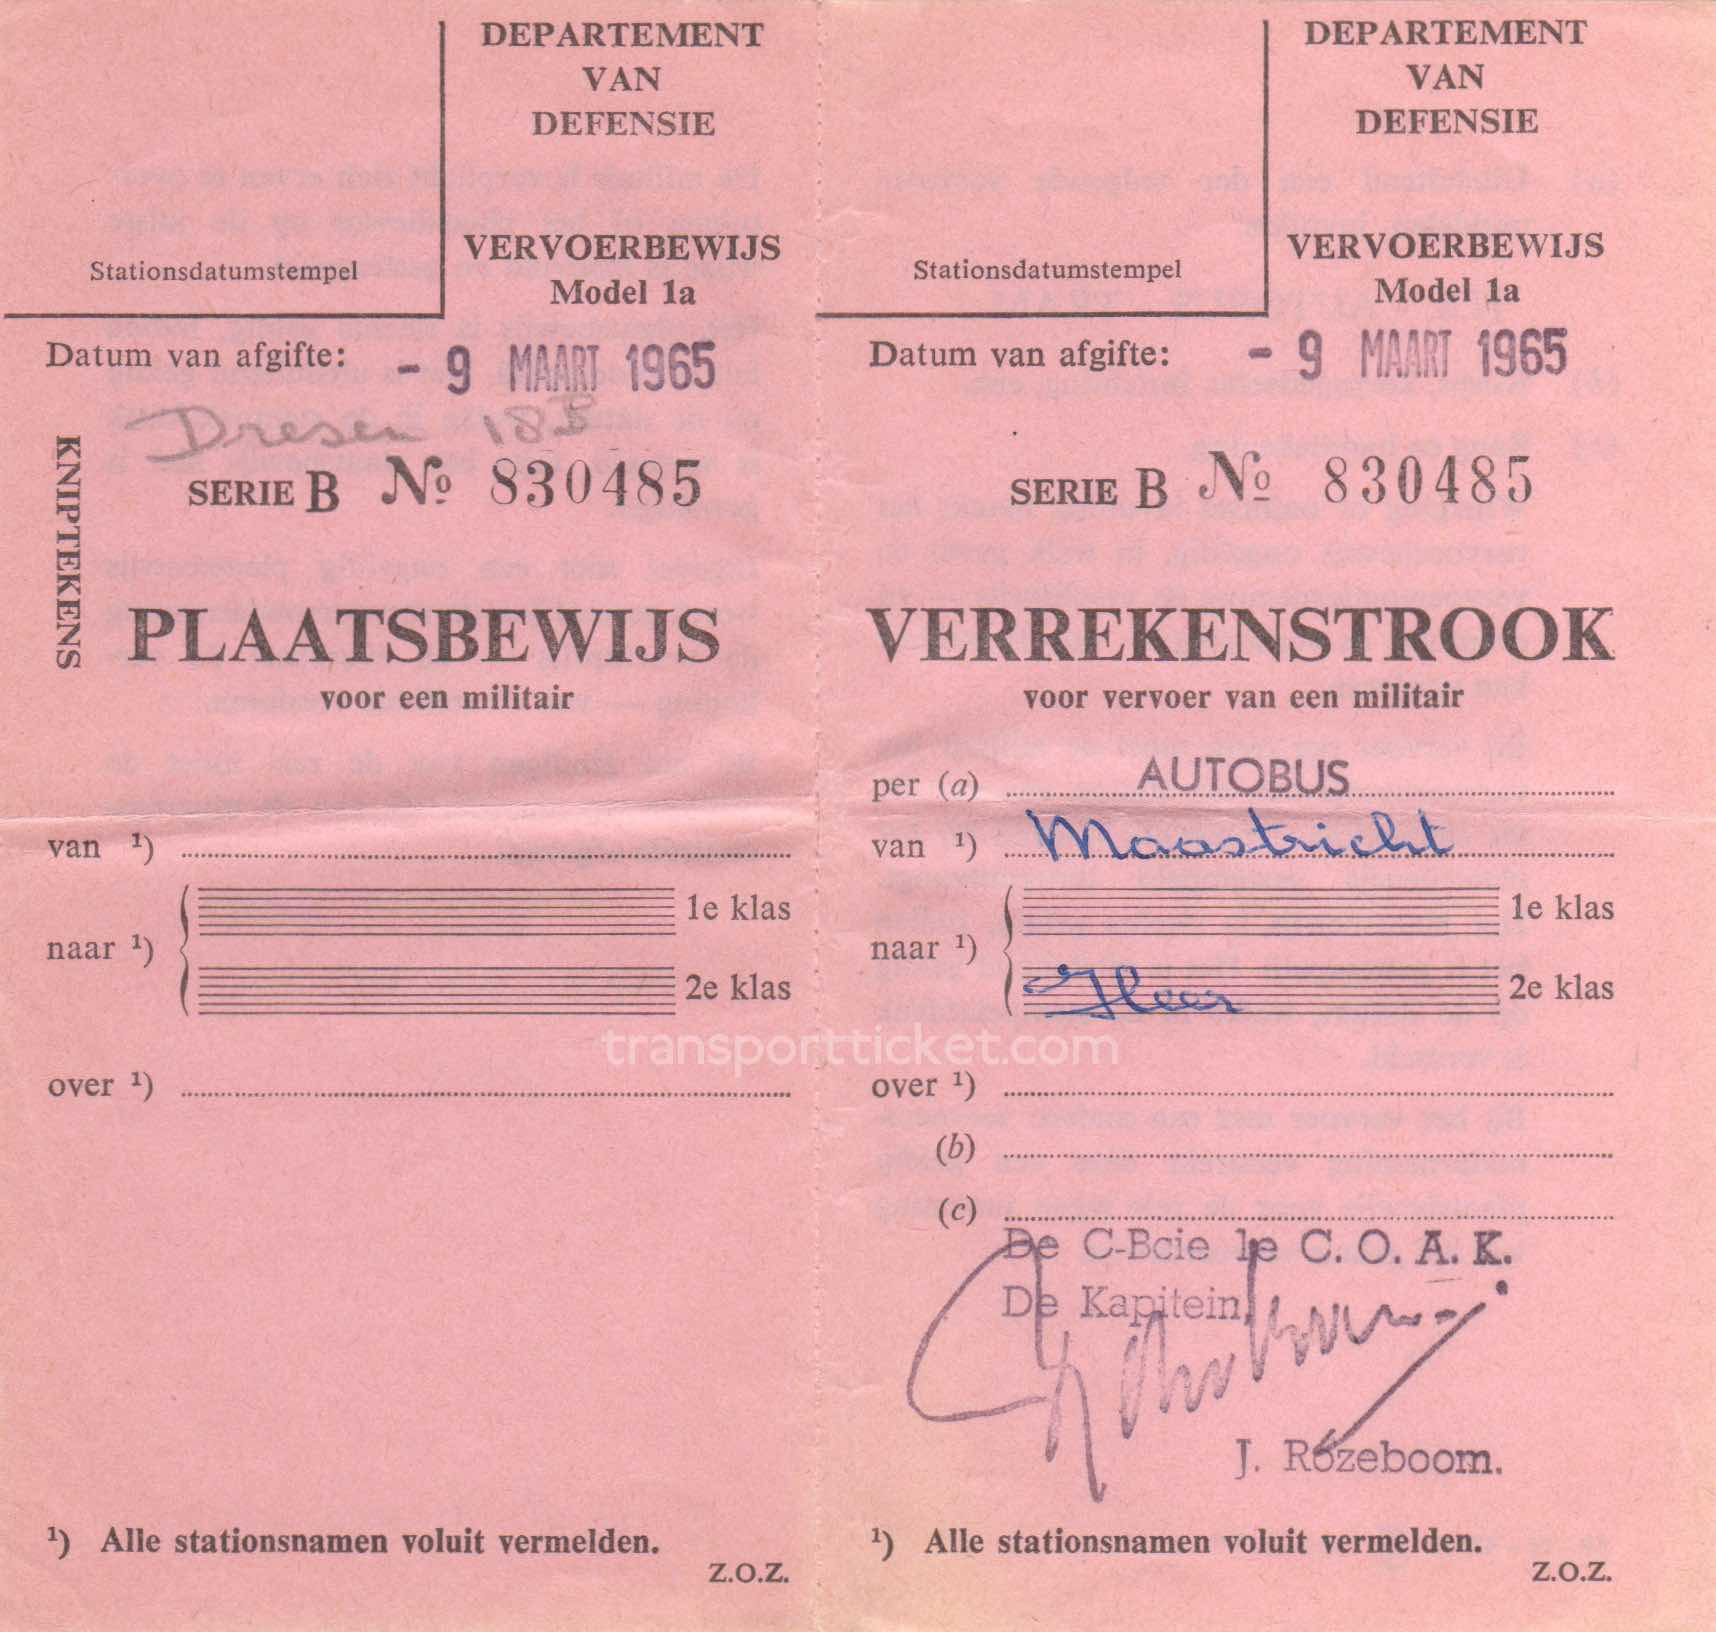 transport ticket issued by Dutch Department of Defense (1965)